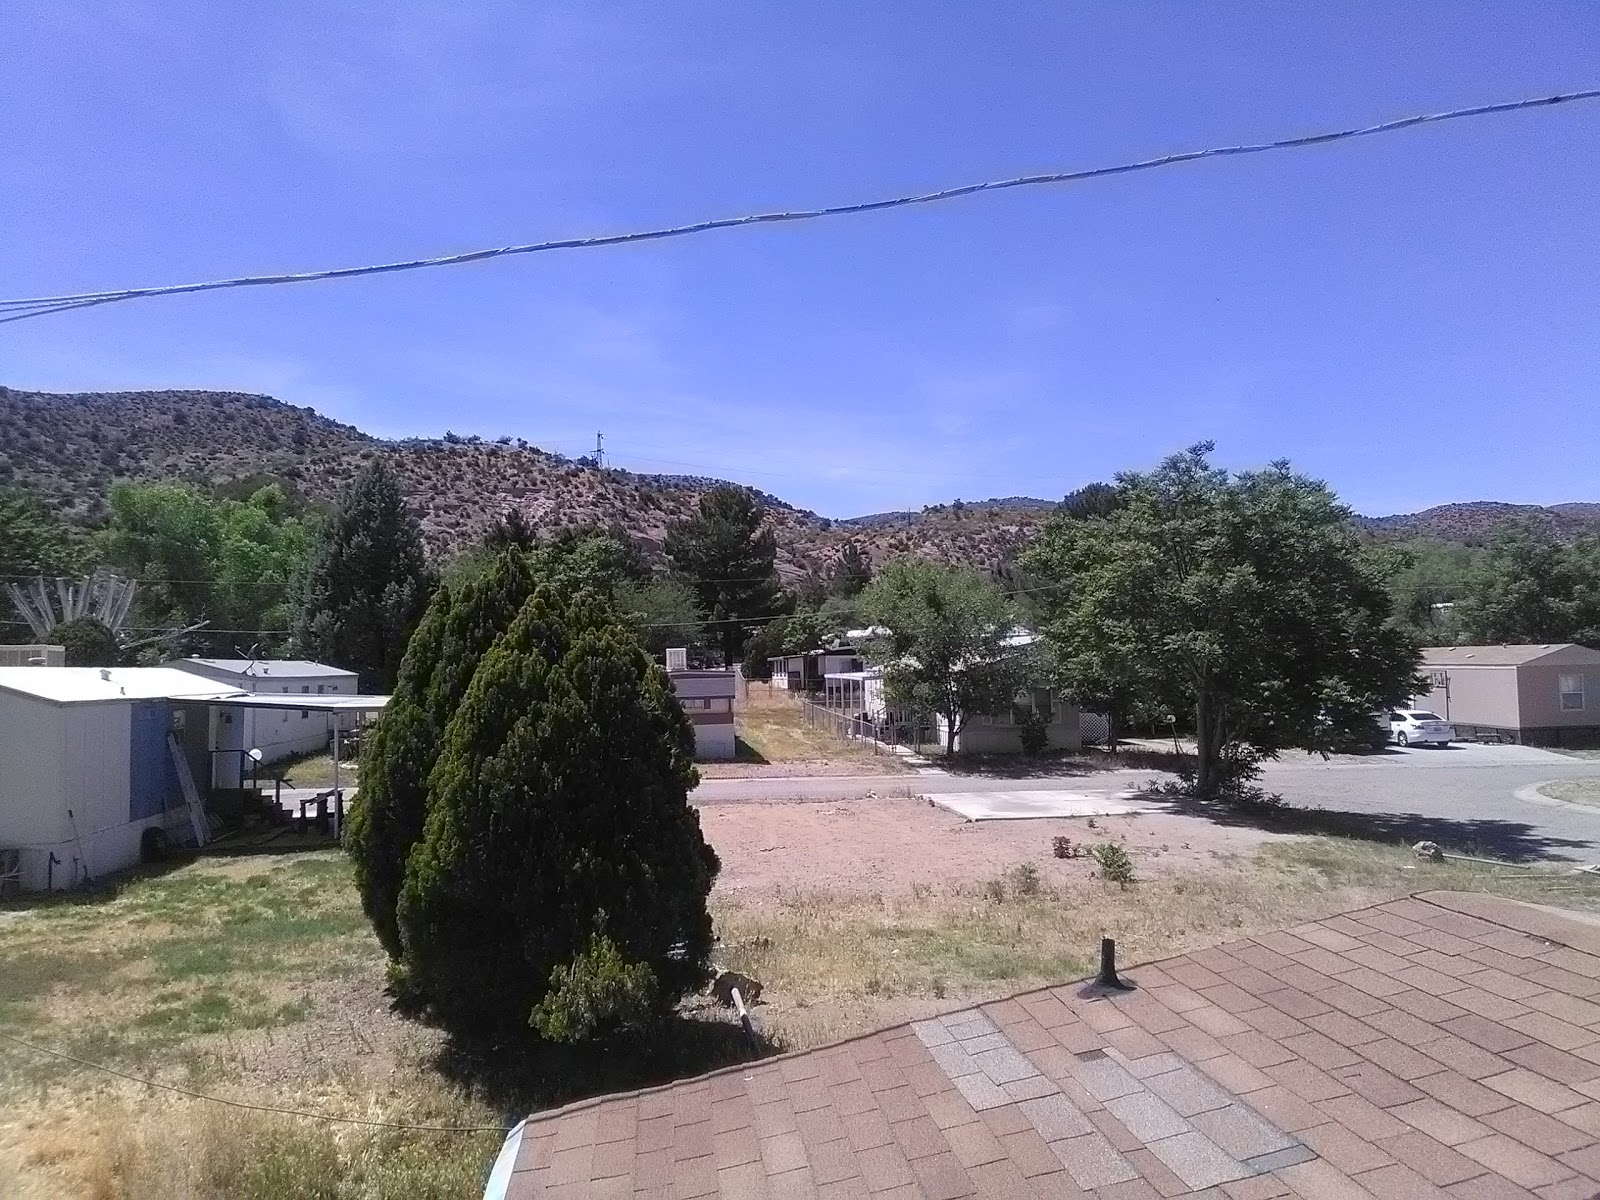 Holiday Hills Mobile Home RV Park